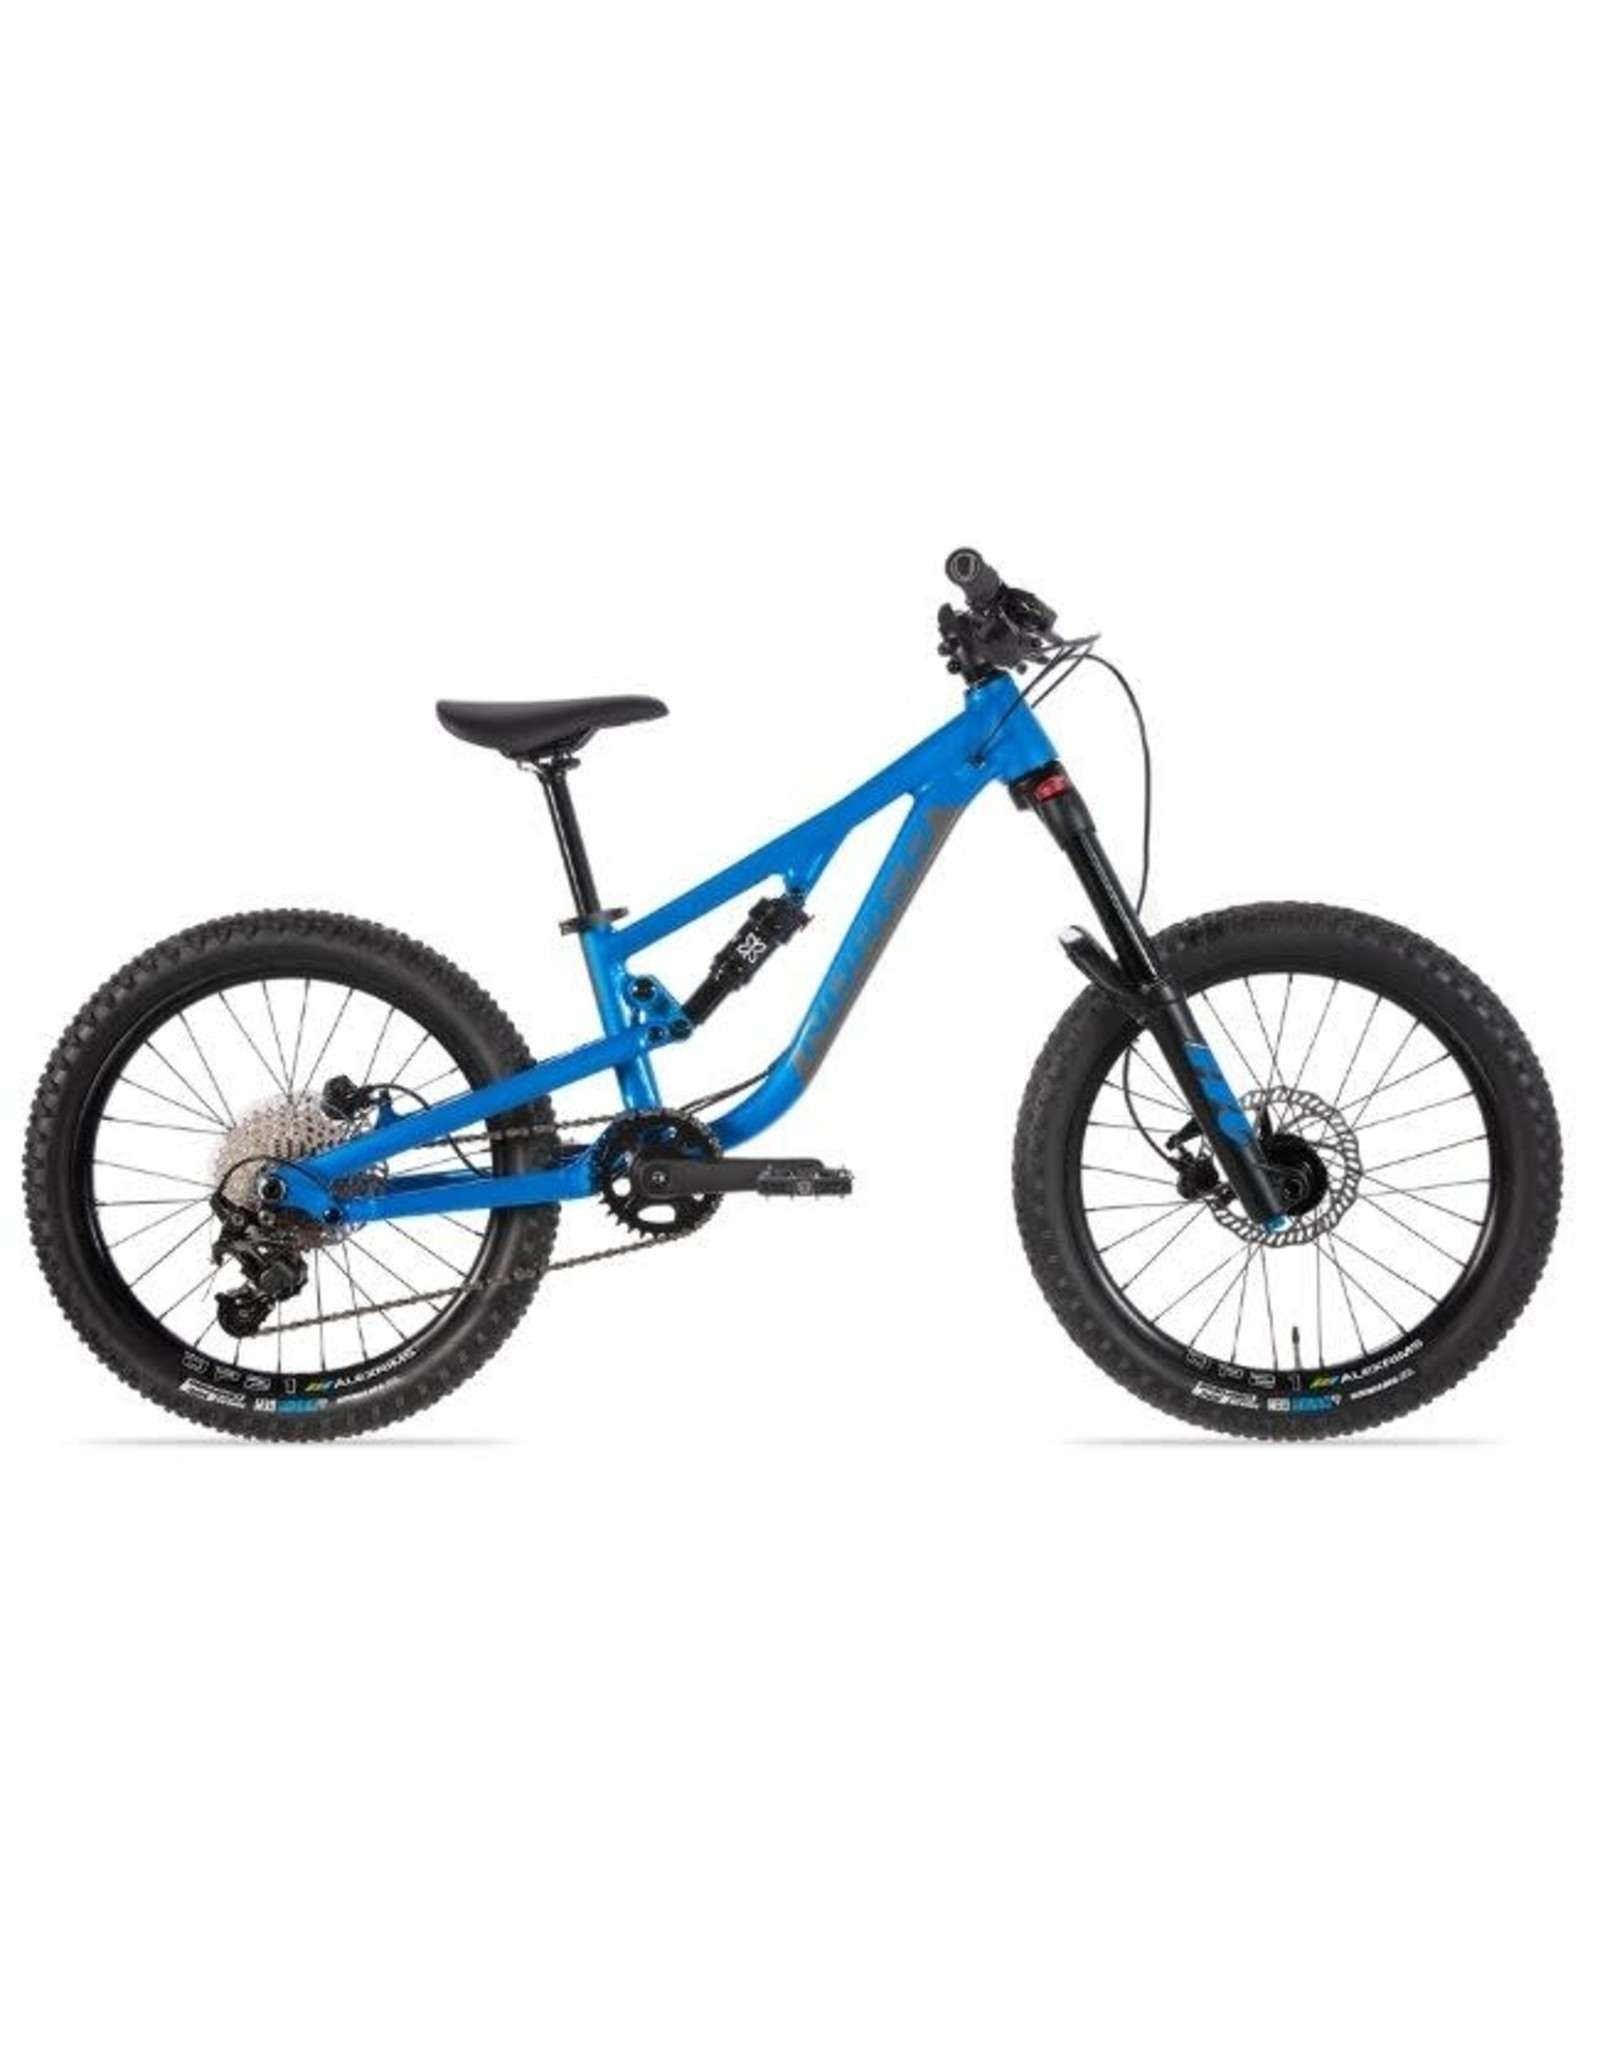 "Norco NORCO FLUID 2.2 FS 20"" BLUE/CHARCOAL"